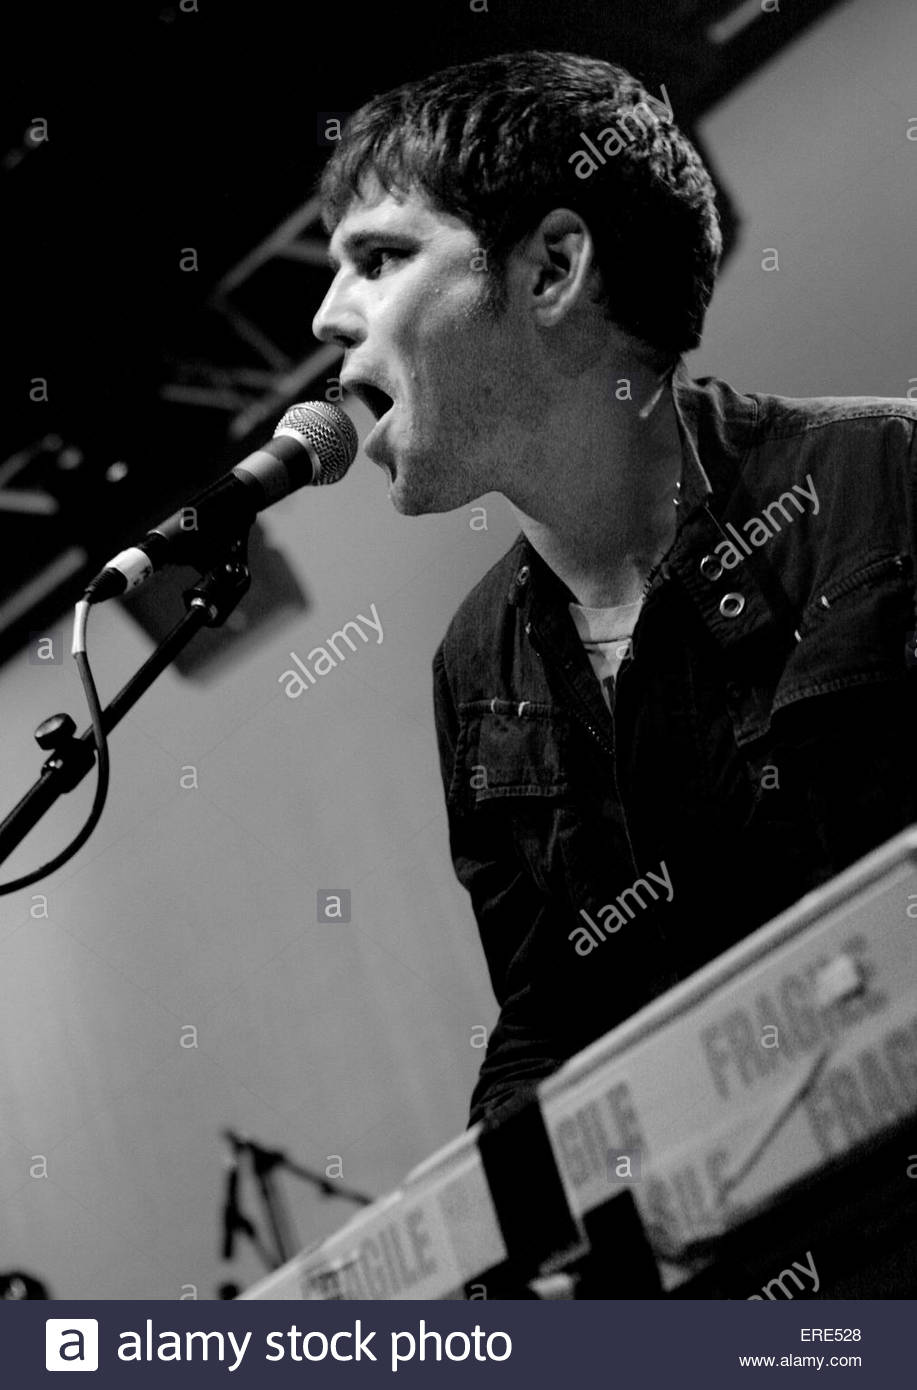 Roy Stride from Scouting For Girls performing at Carling Academy Bristol 06 April 2008 - Stock Image